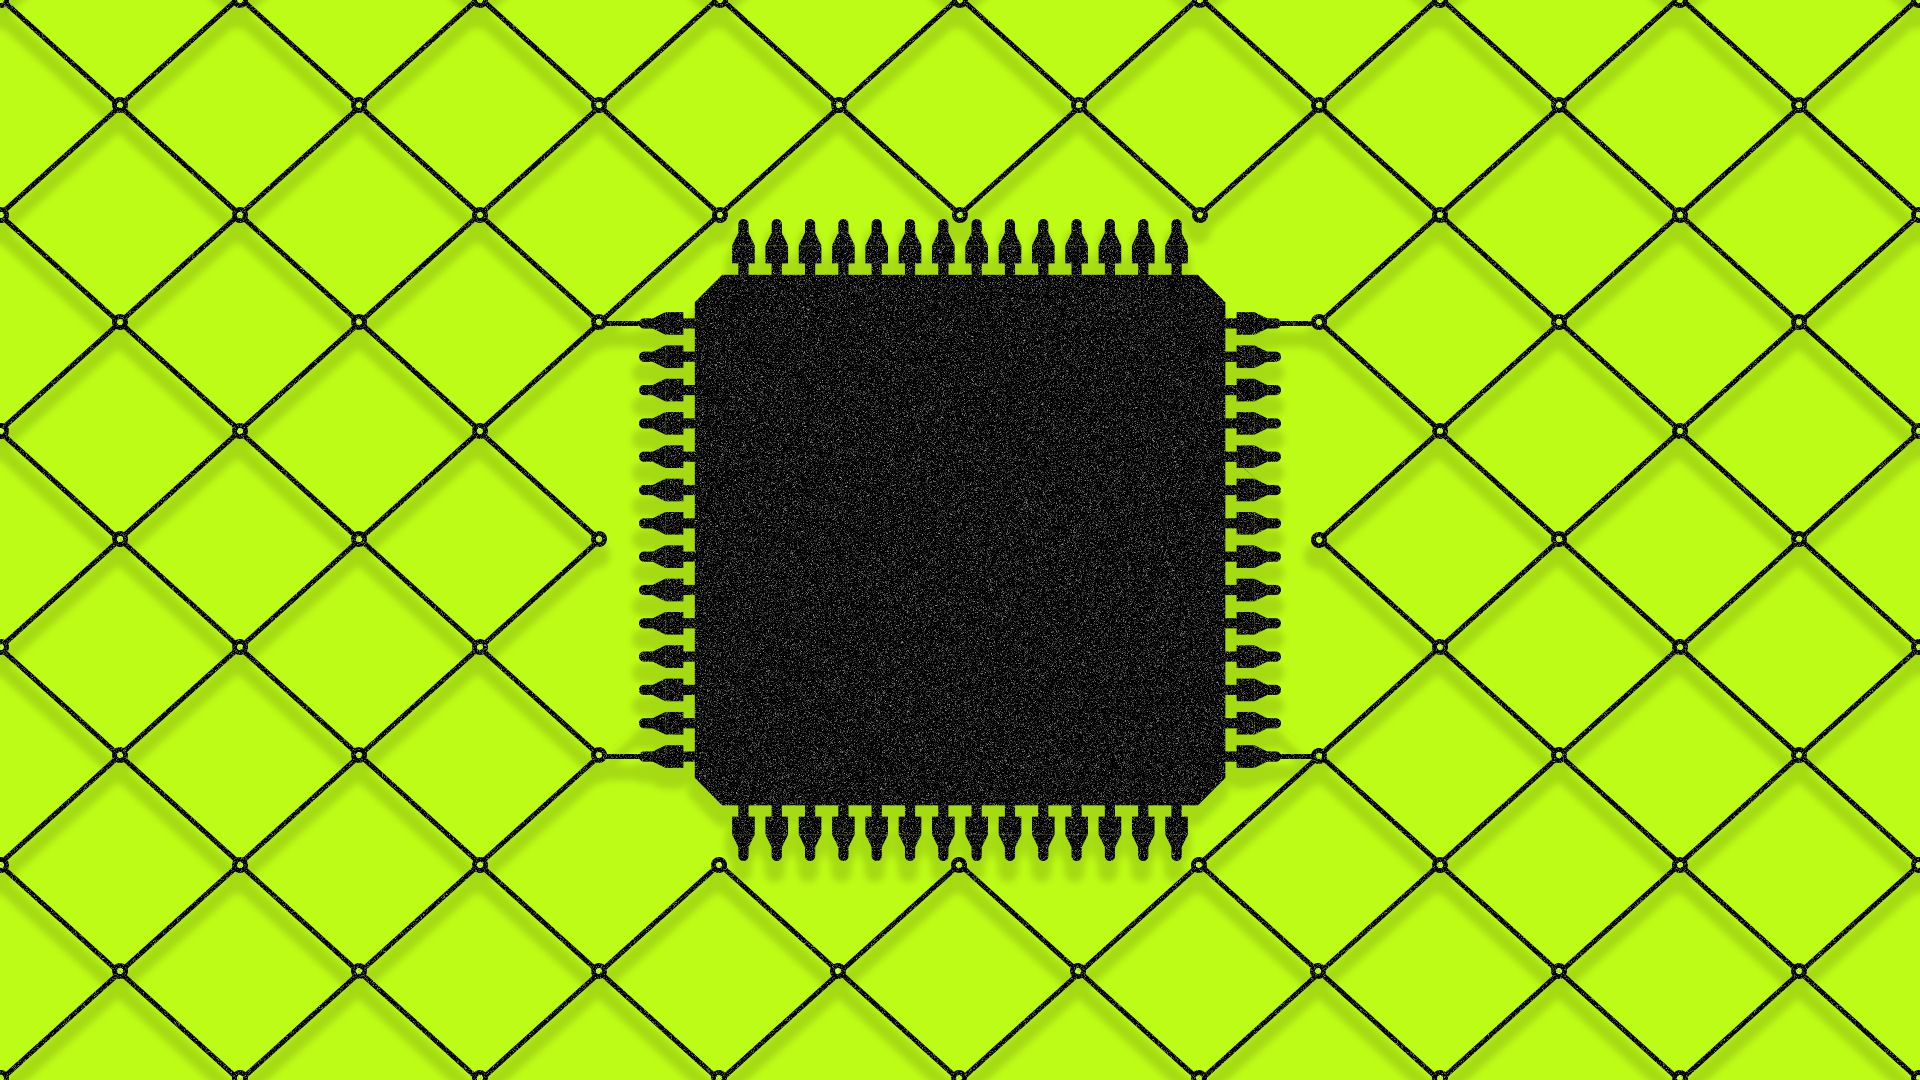 Illustration of a semiconductor chip